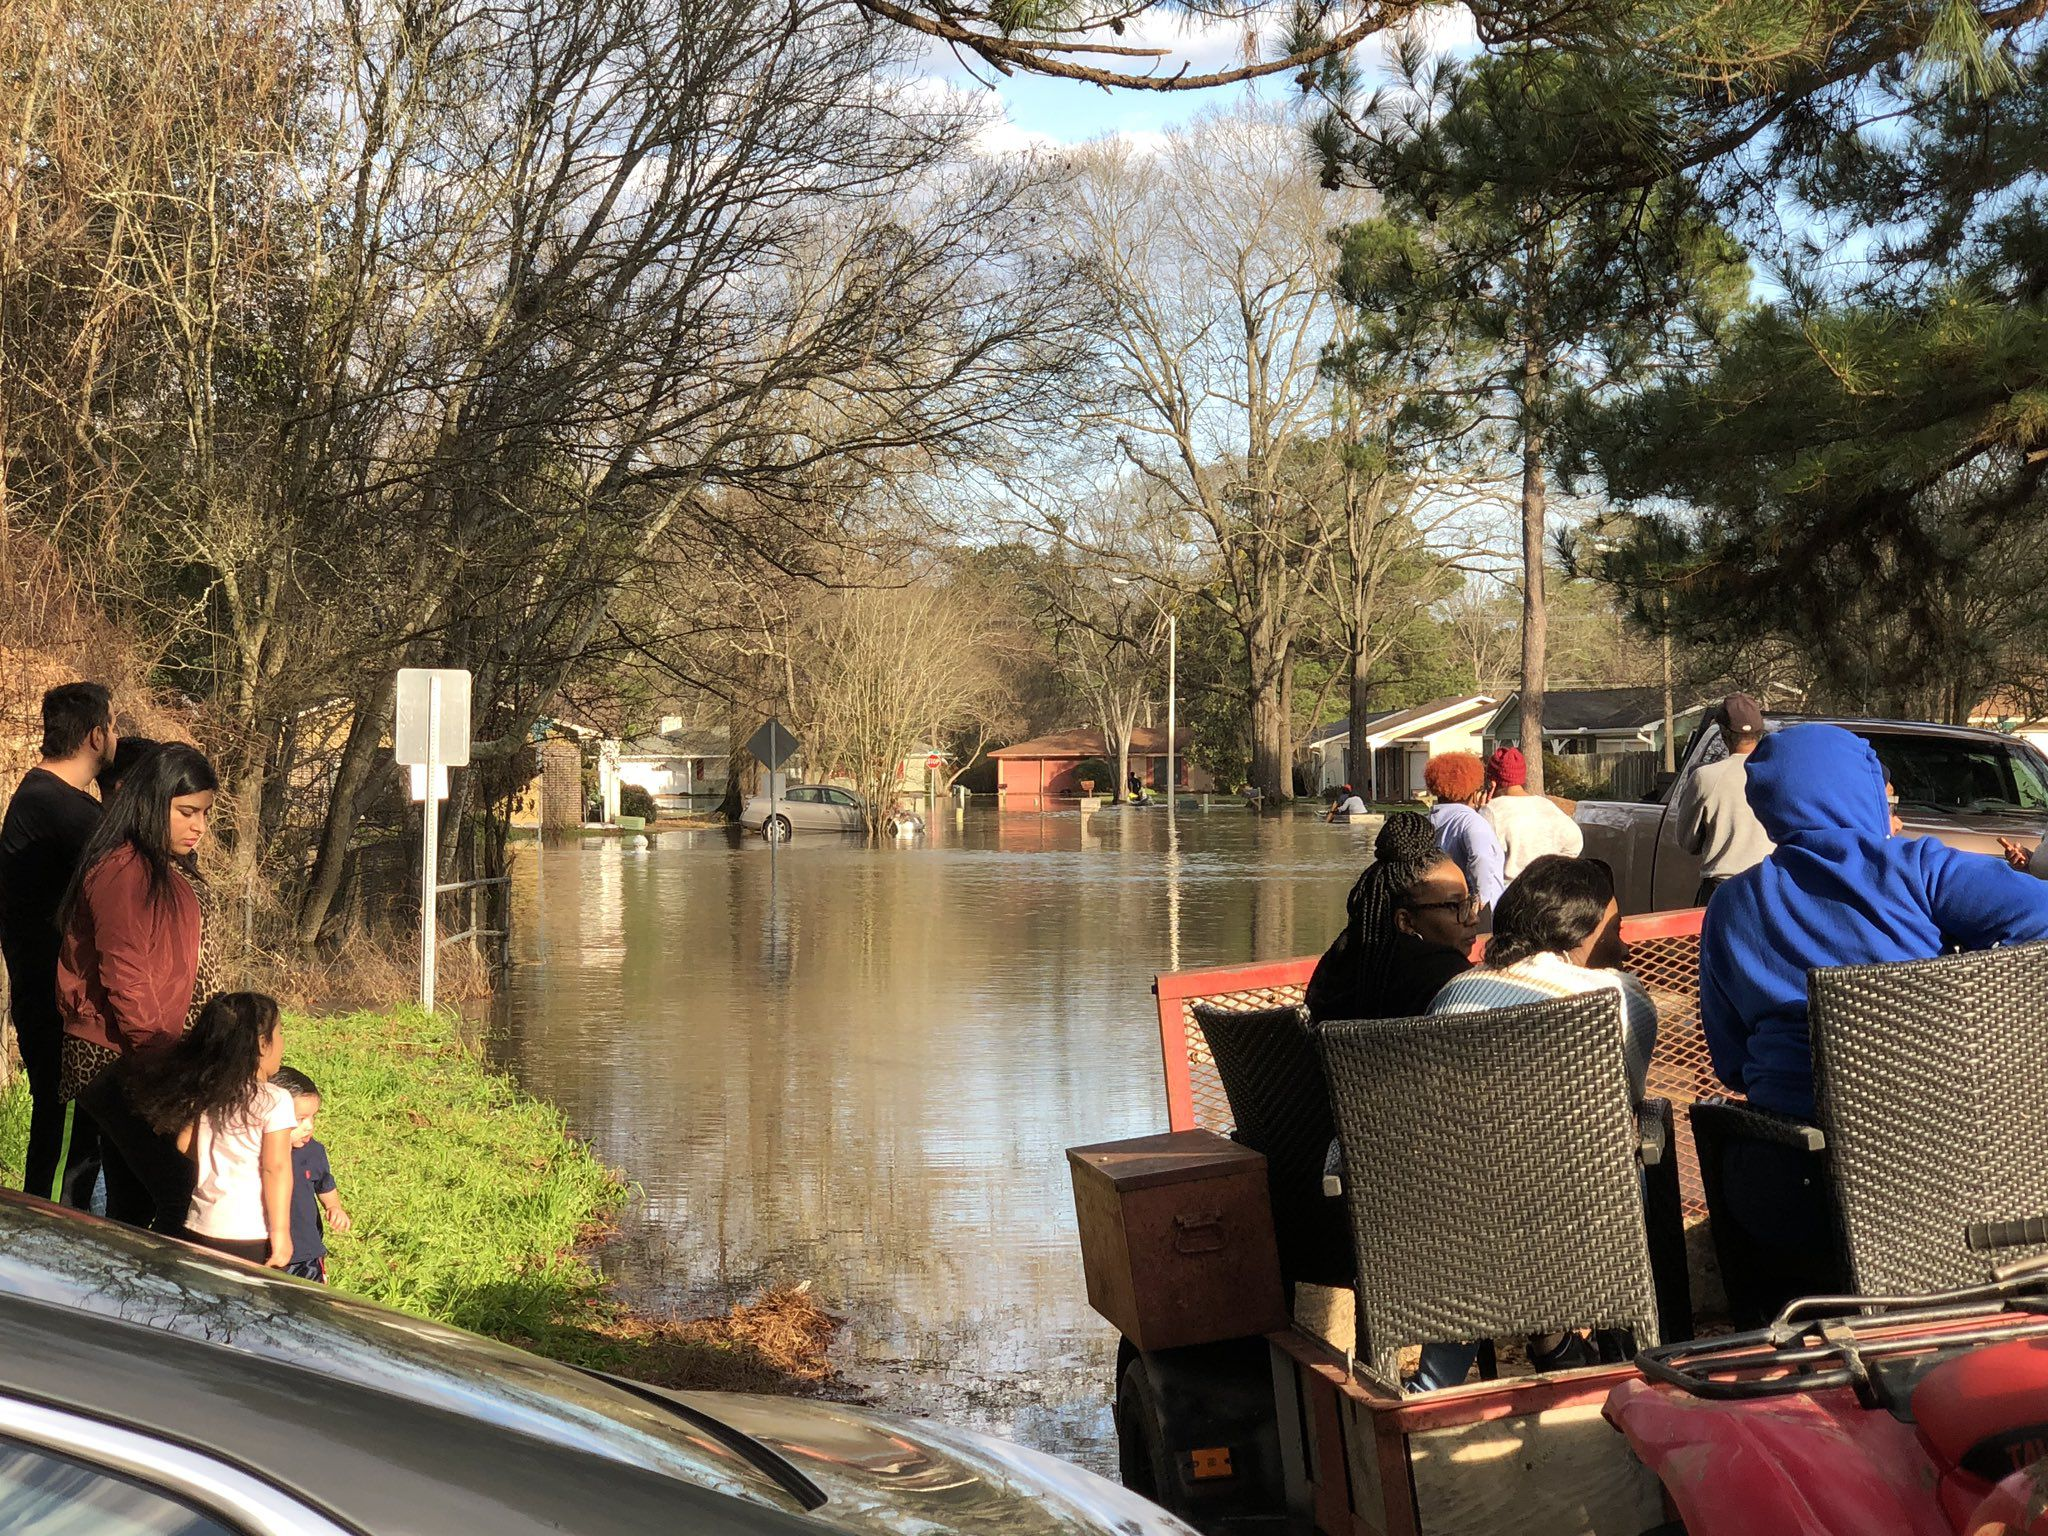 Mississippi flooding: Evacuations under way as Pearl River swells - Axios